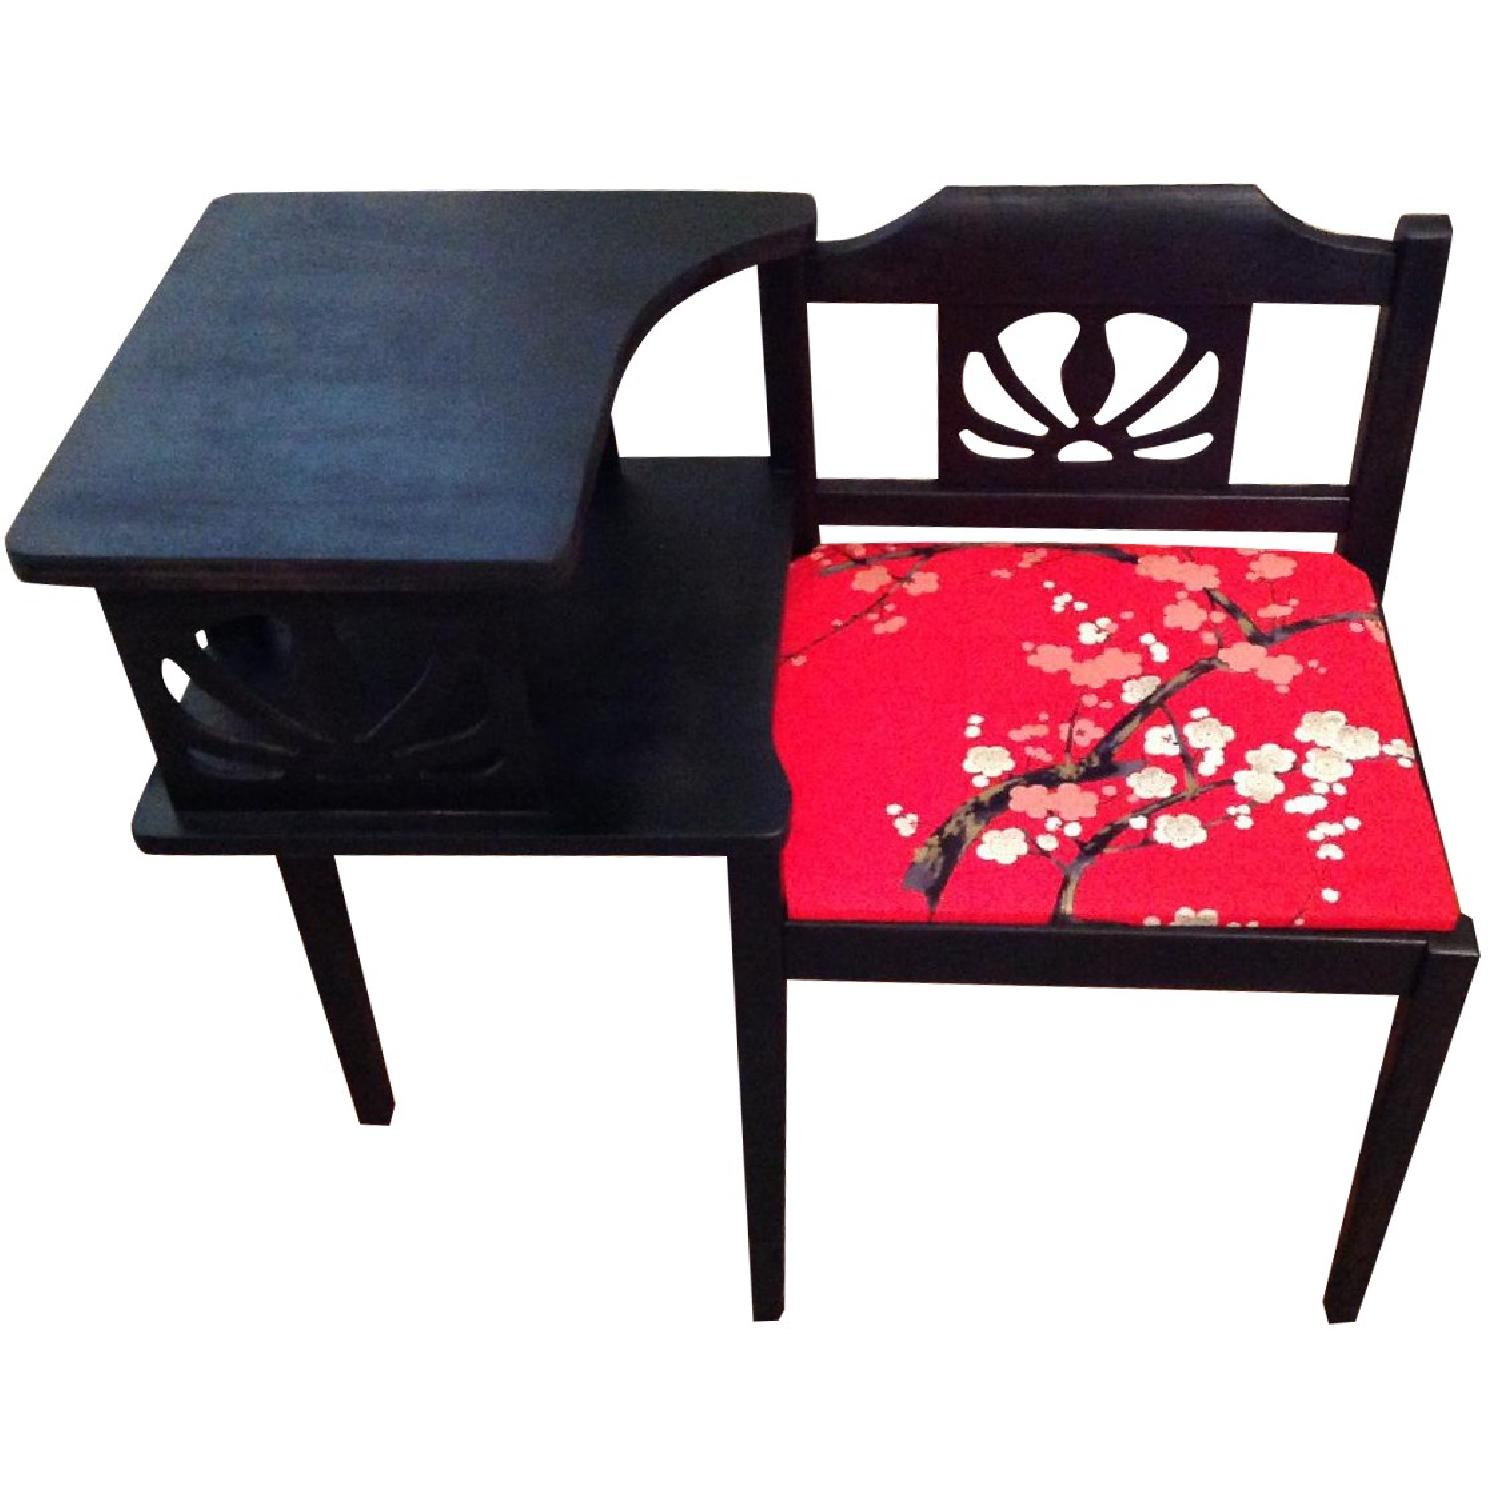 Upcycled Vintage Telephone Gossip Table/Chair - Hot Pink/Red Cherry Blossom Fabric - image-0